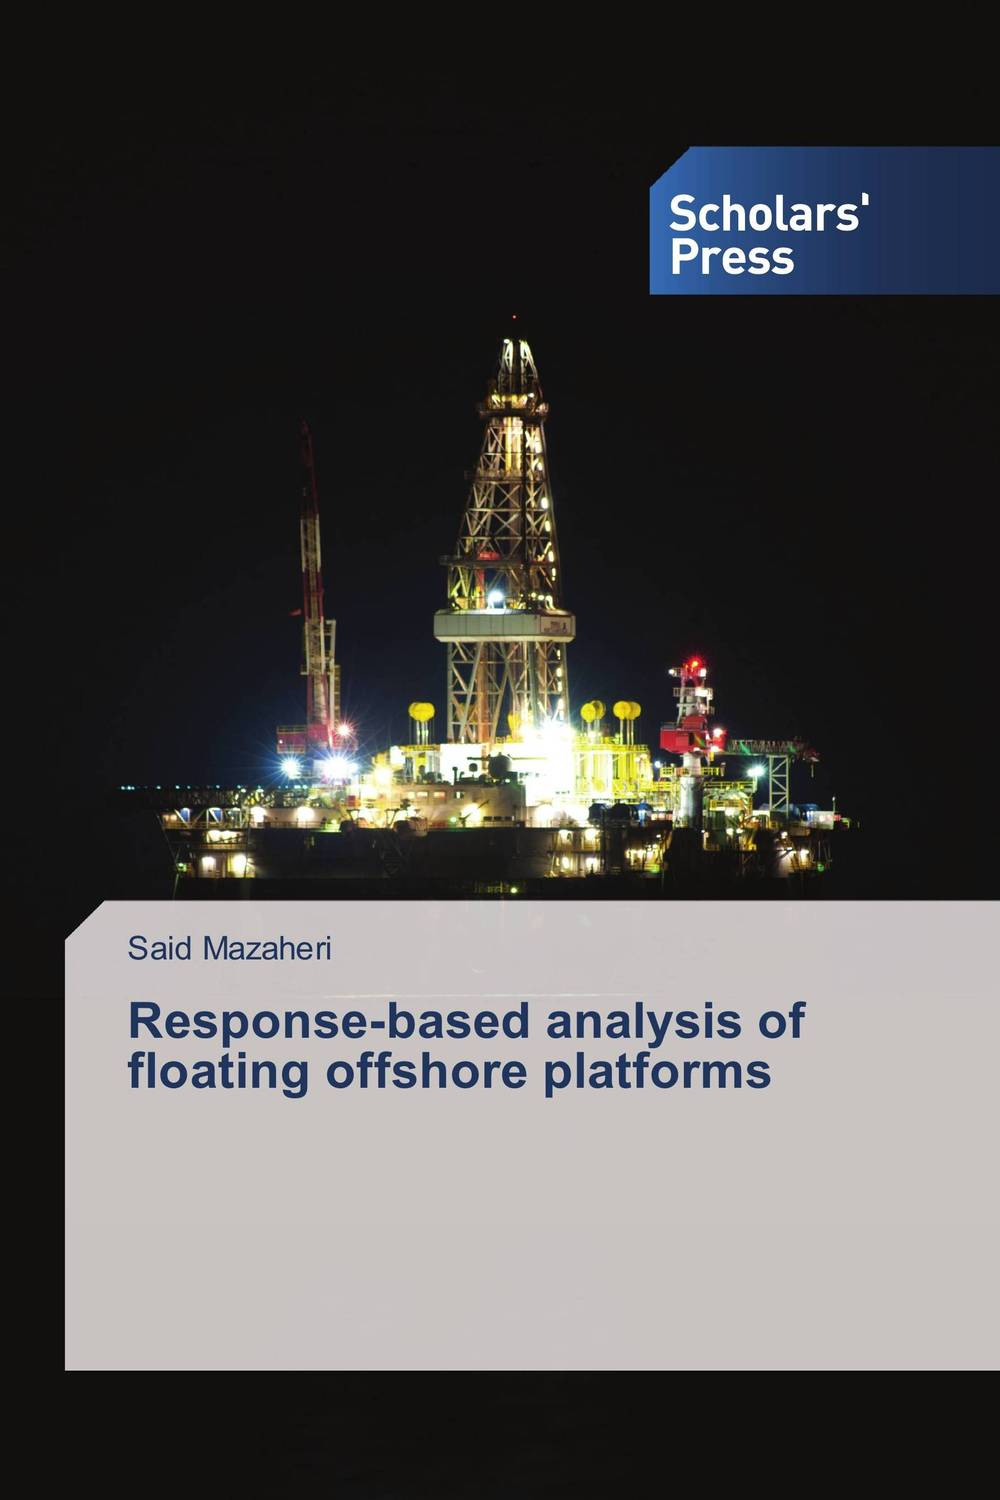 Response-based analysis of floating offshore platforms ahmed omar abdallah tarek moustafa mahmoud and tarek abd el hafeez abd el rahman filtering pornography based on face detection and content analysis